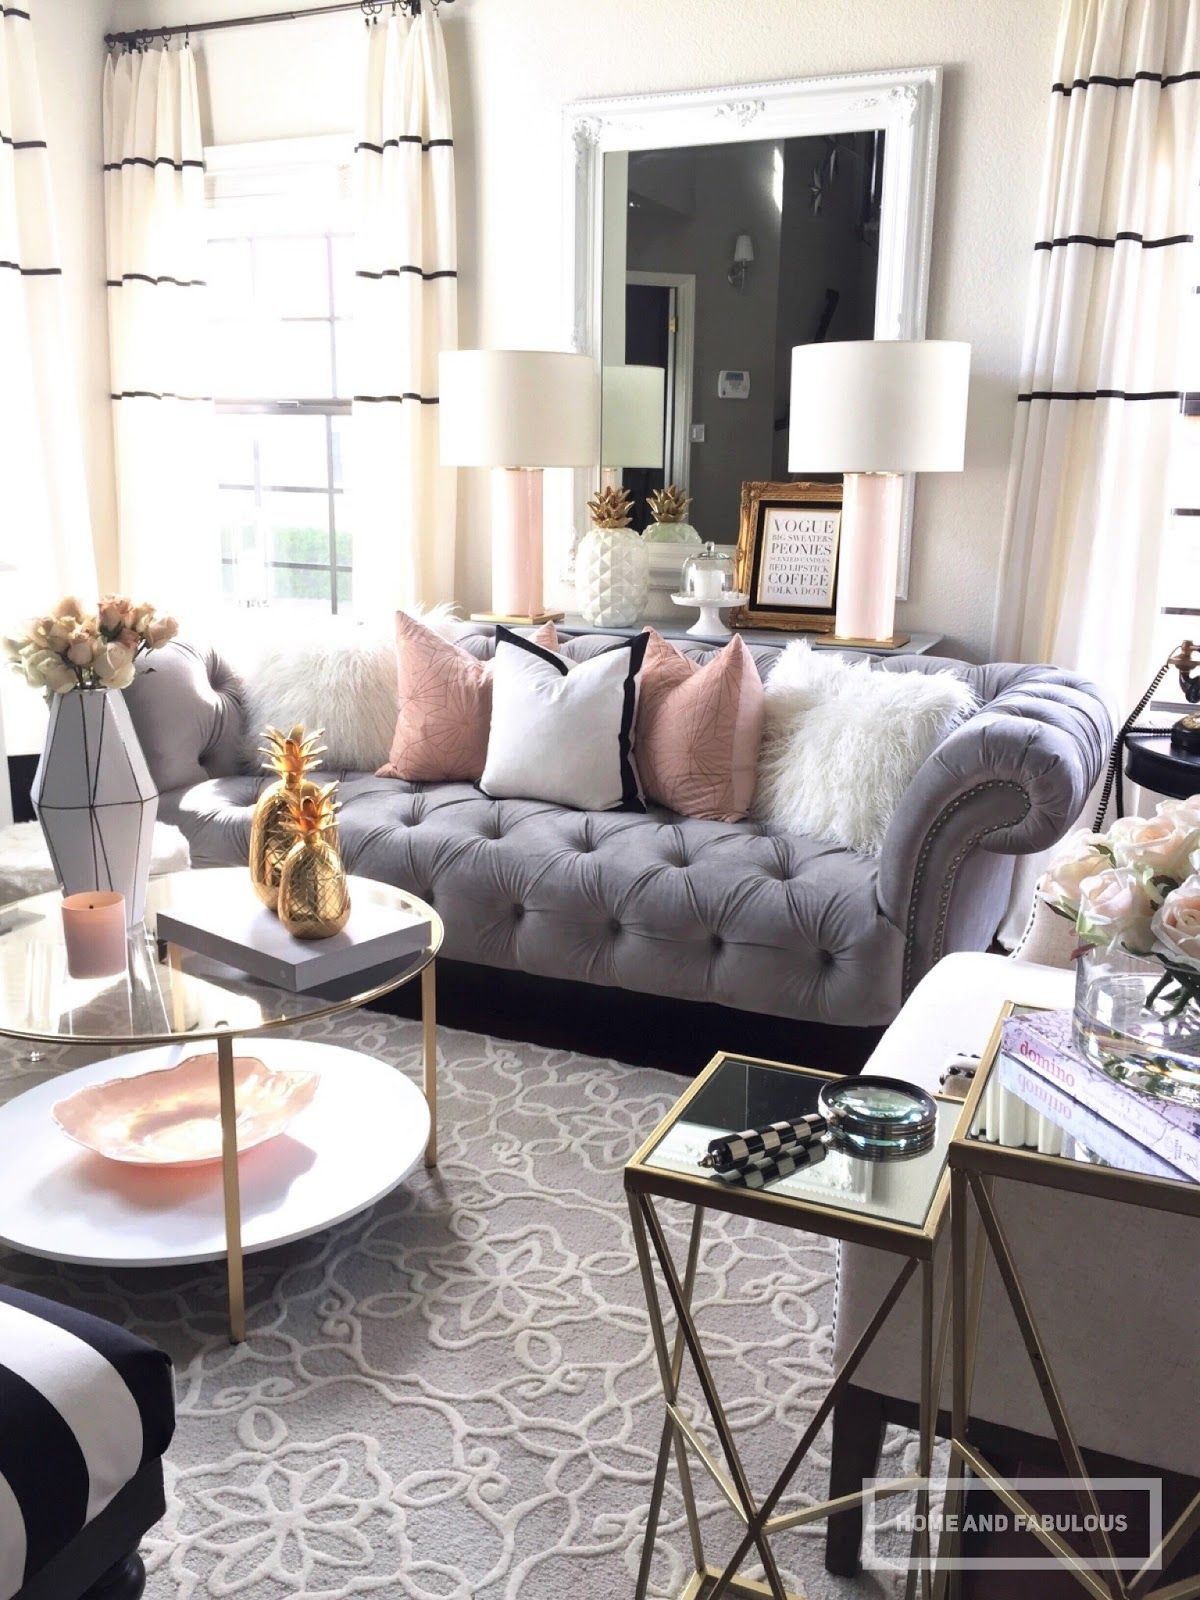 How one couch inspired  living room transformation also by charm summer home tour  decorate rh pinterest